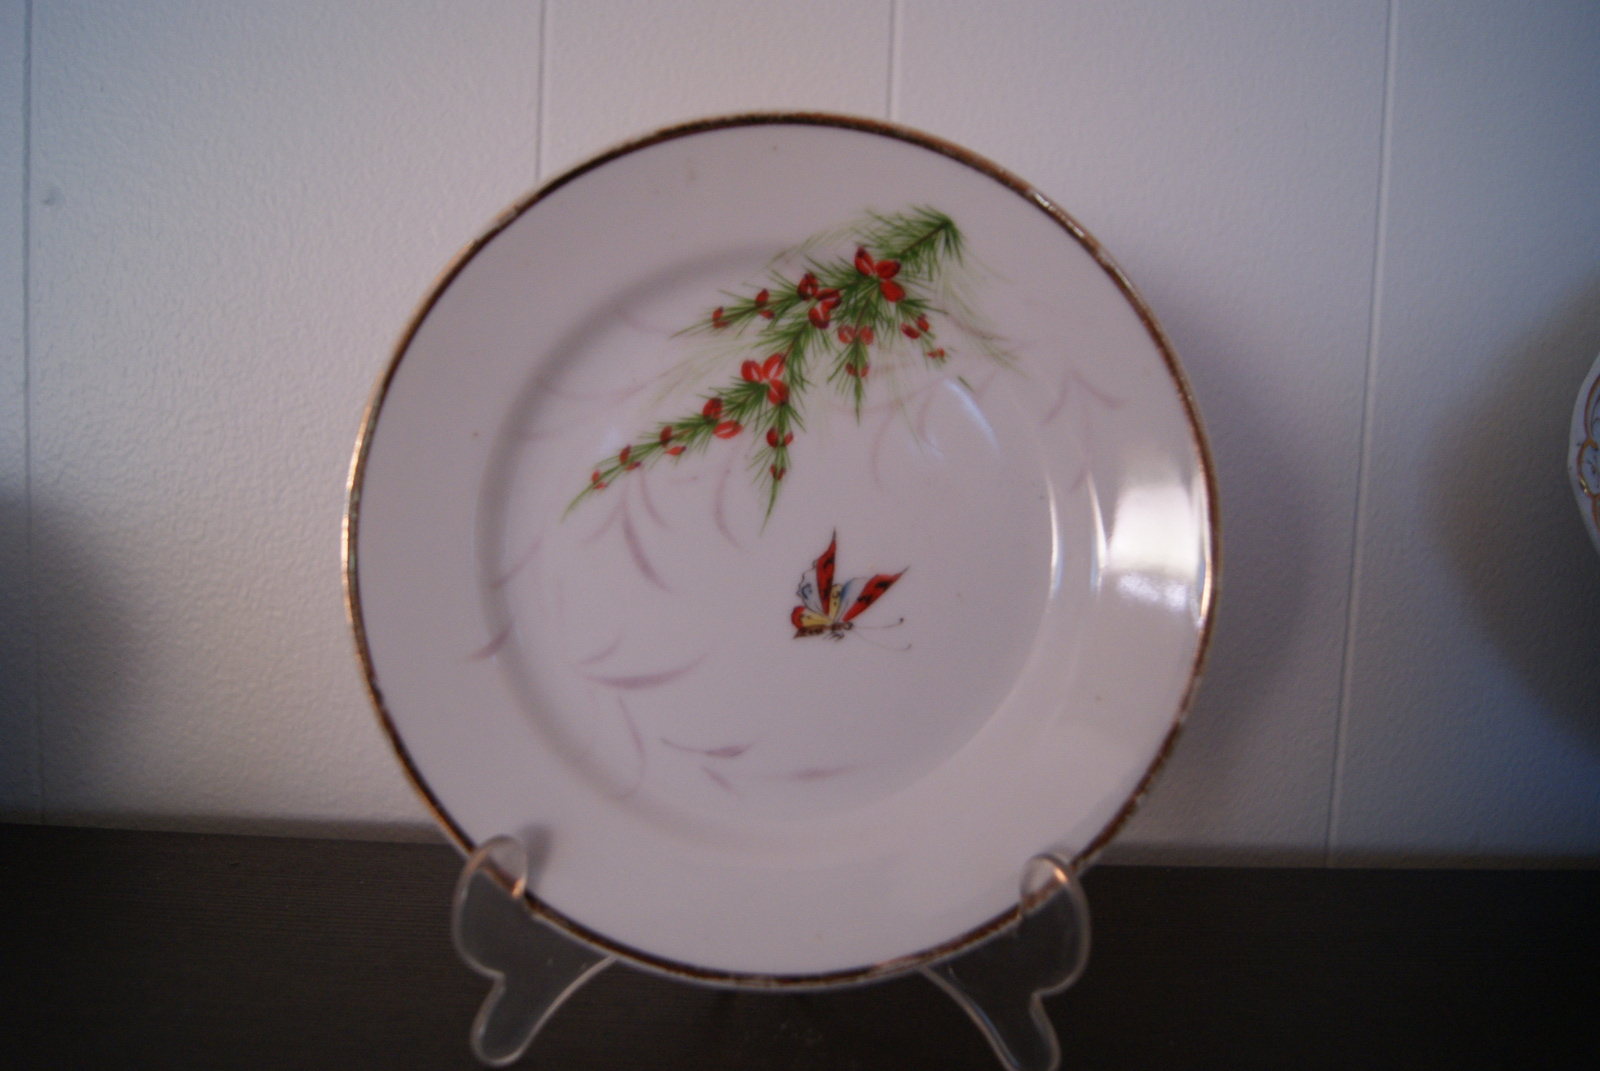 Copenhagen Bing & Grøndahl plate with butterfly and juniper with red fruits